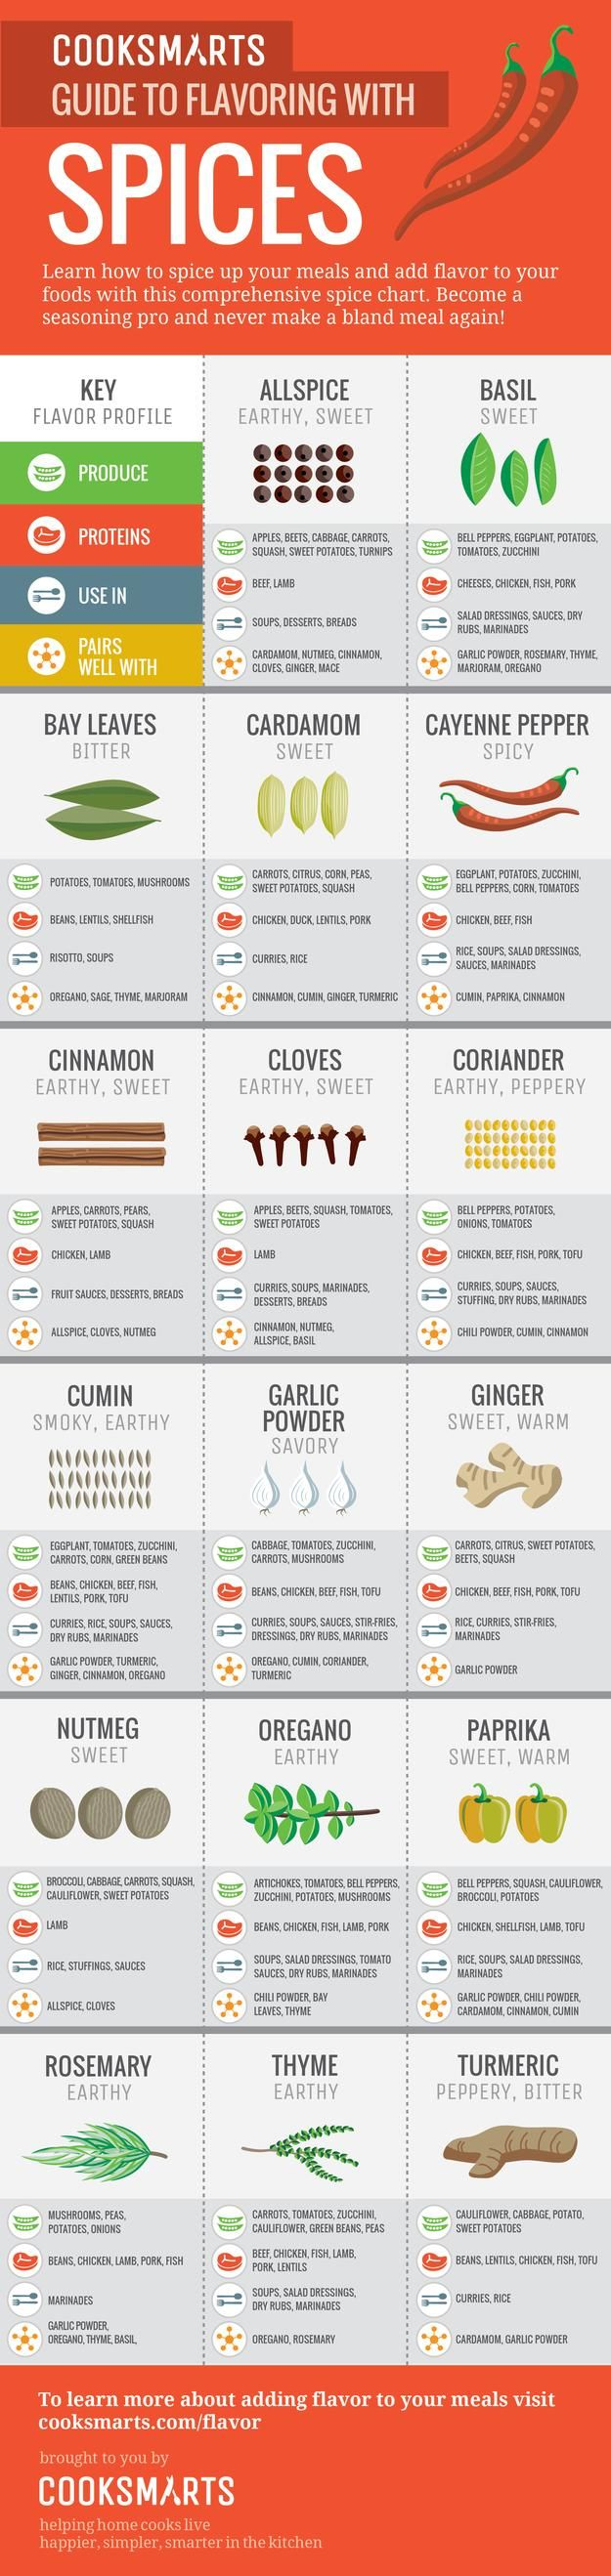 Spice Guide for flavorful cooking. #HealthyEating #CleanEating #ShermanFinancialGroup